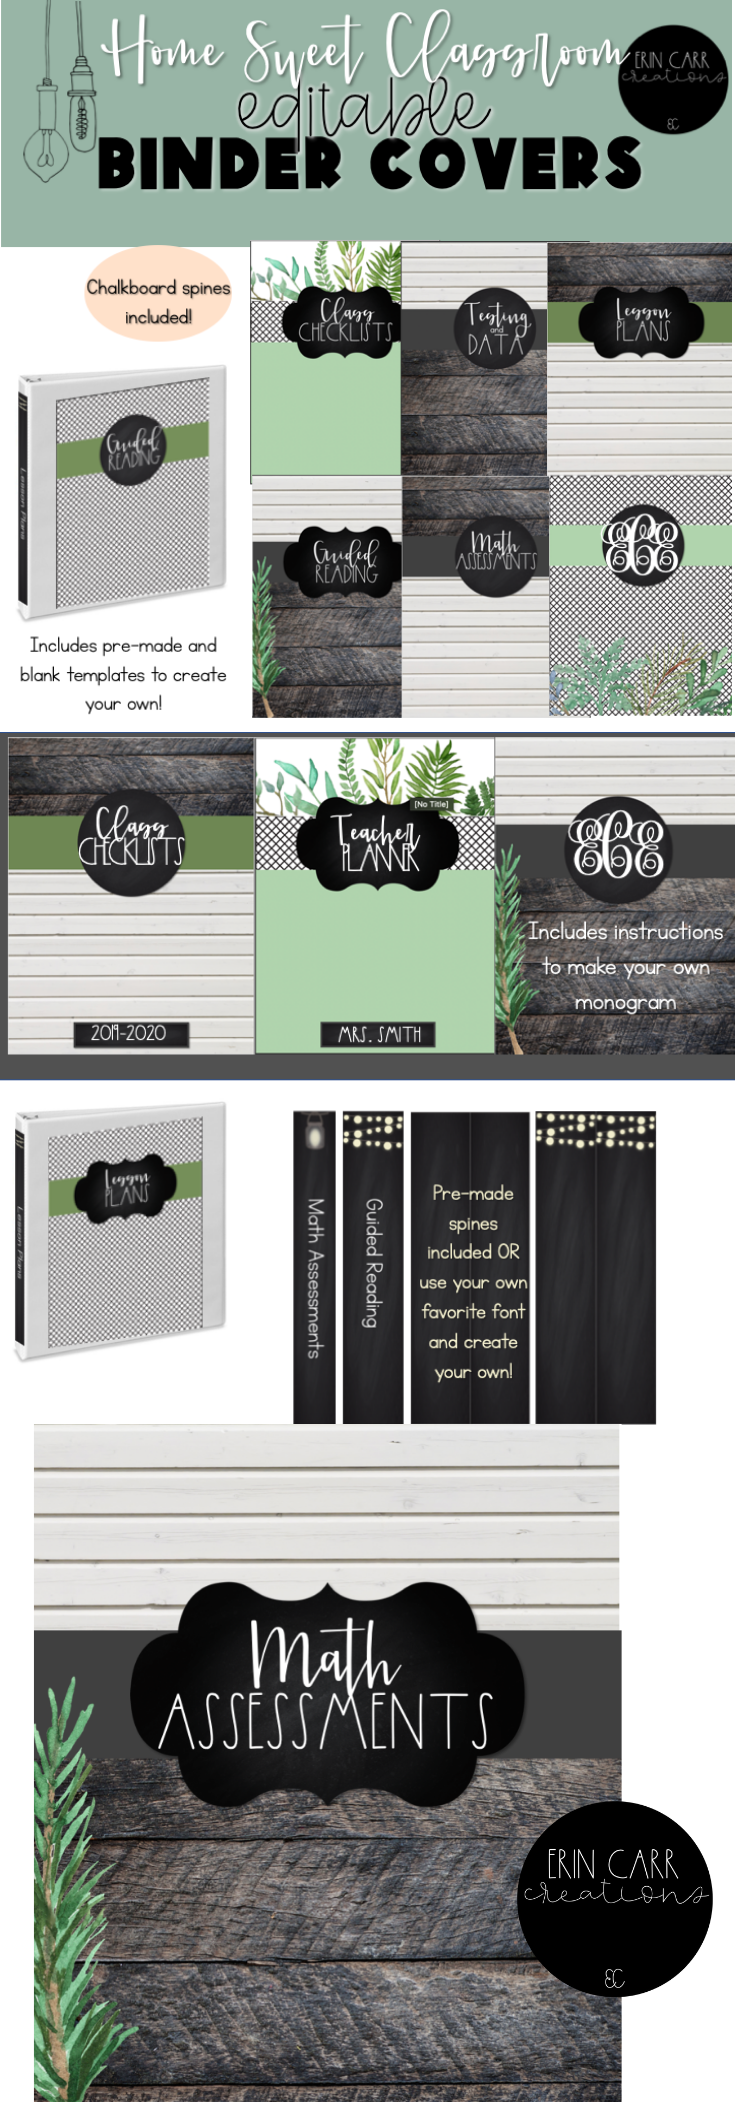 Lush greenery, white shiplap, rustic wood, and chalkboard all come together to create a calm farmho